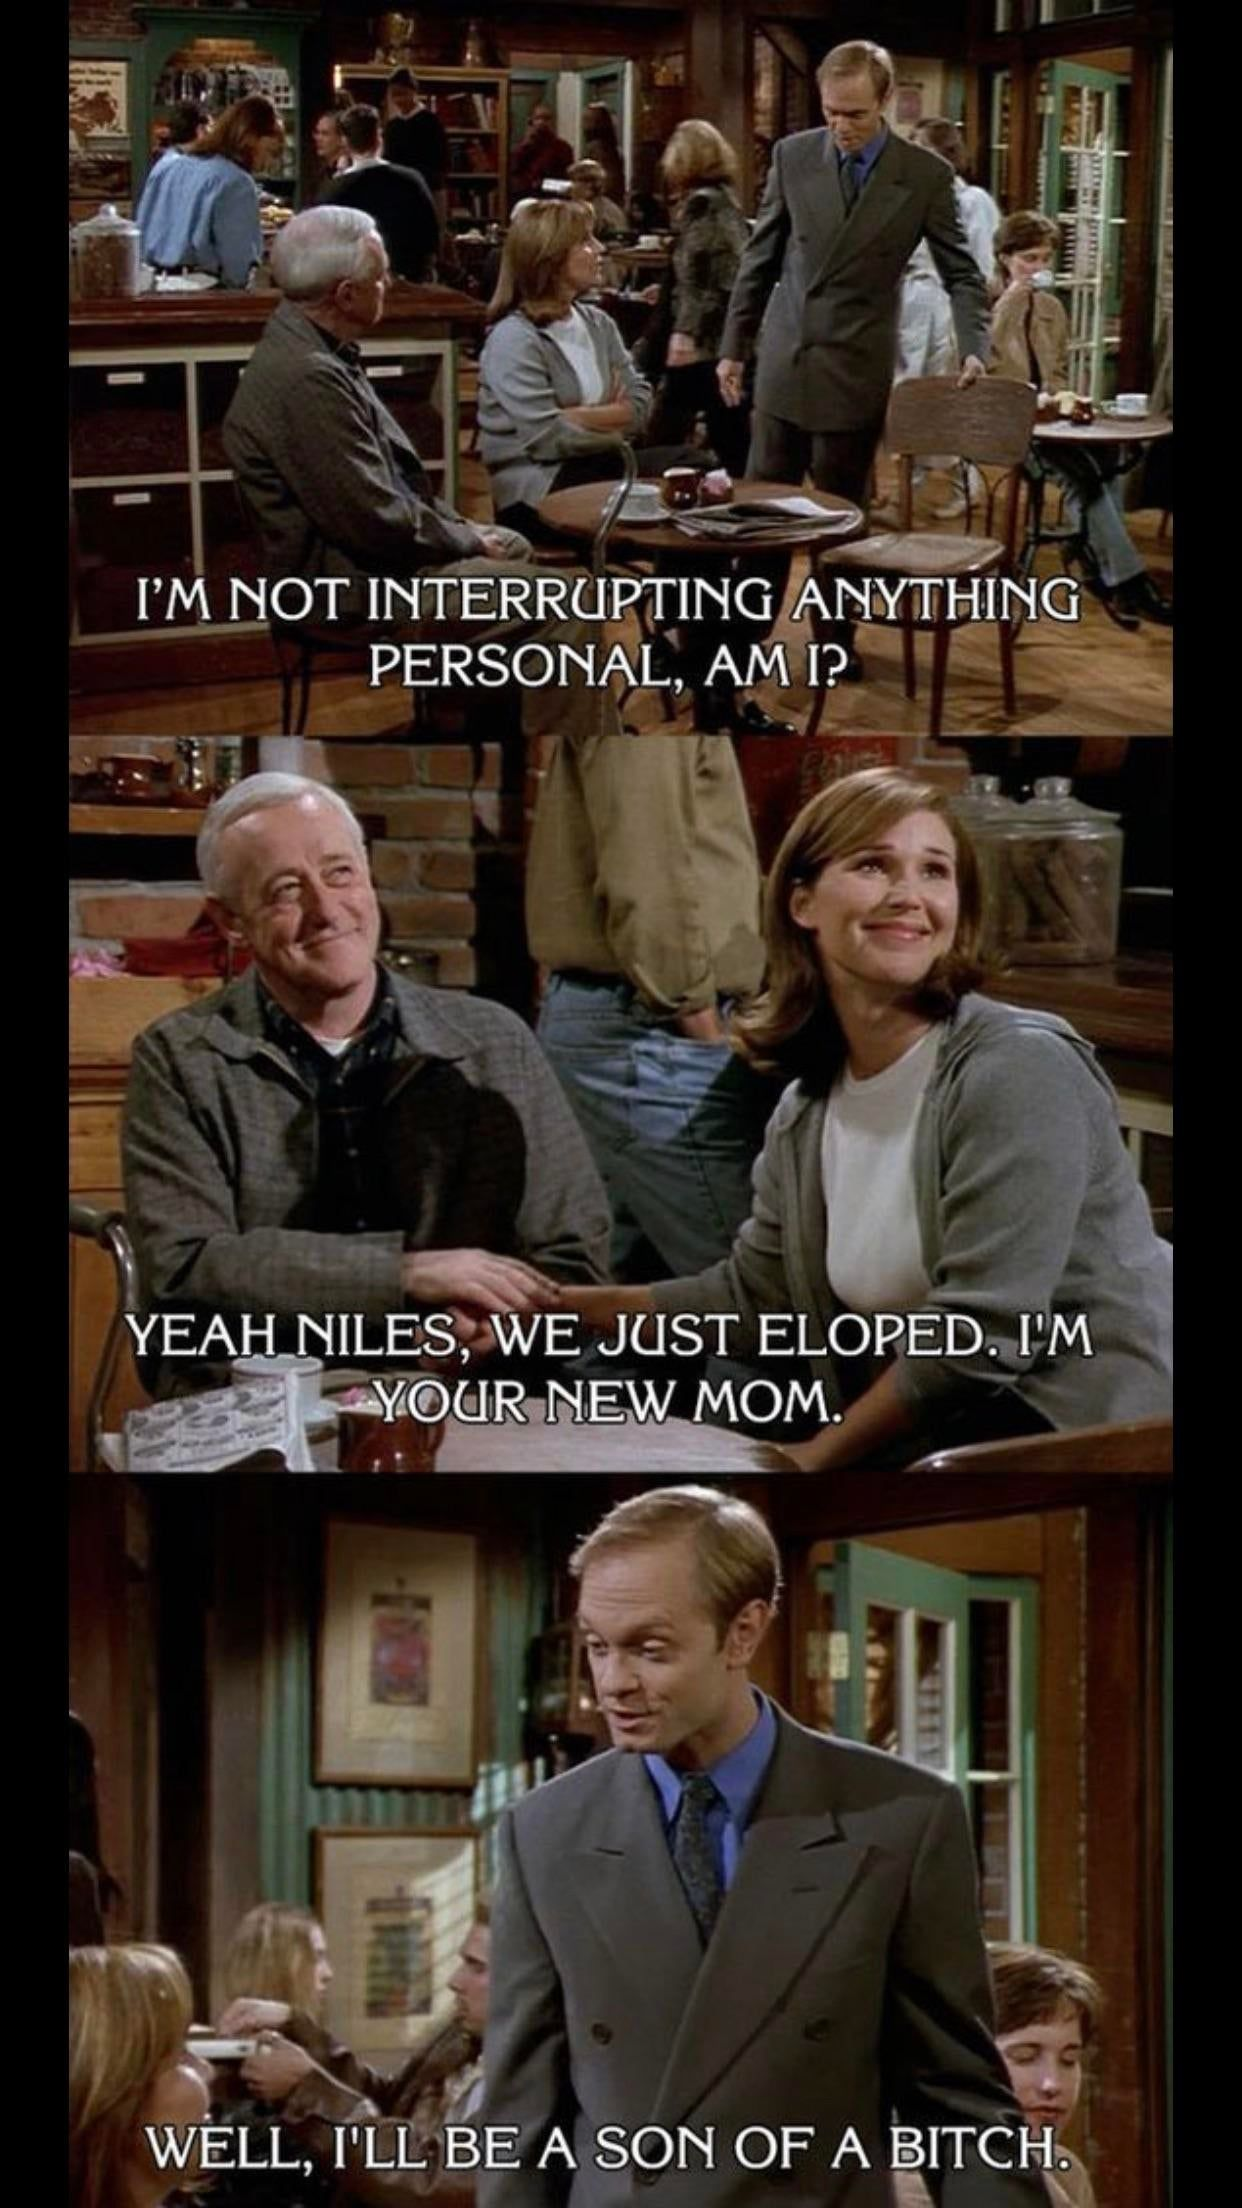 Oh Niles, never change